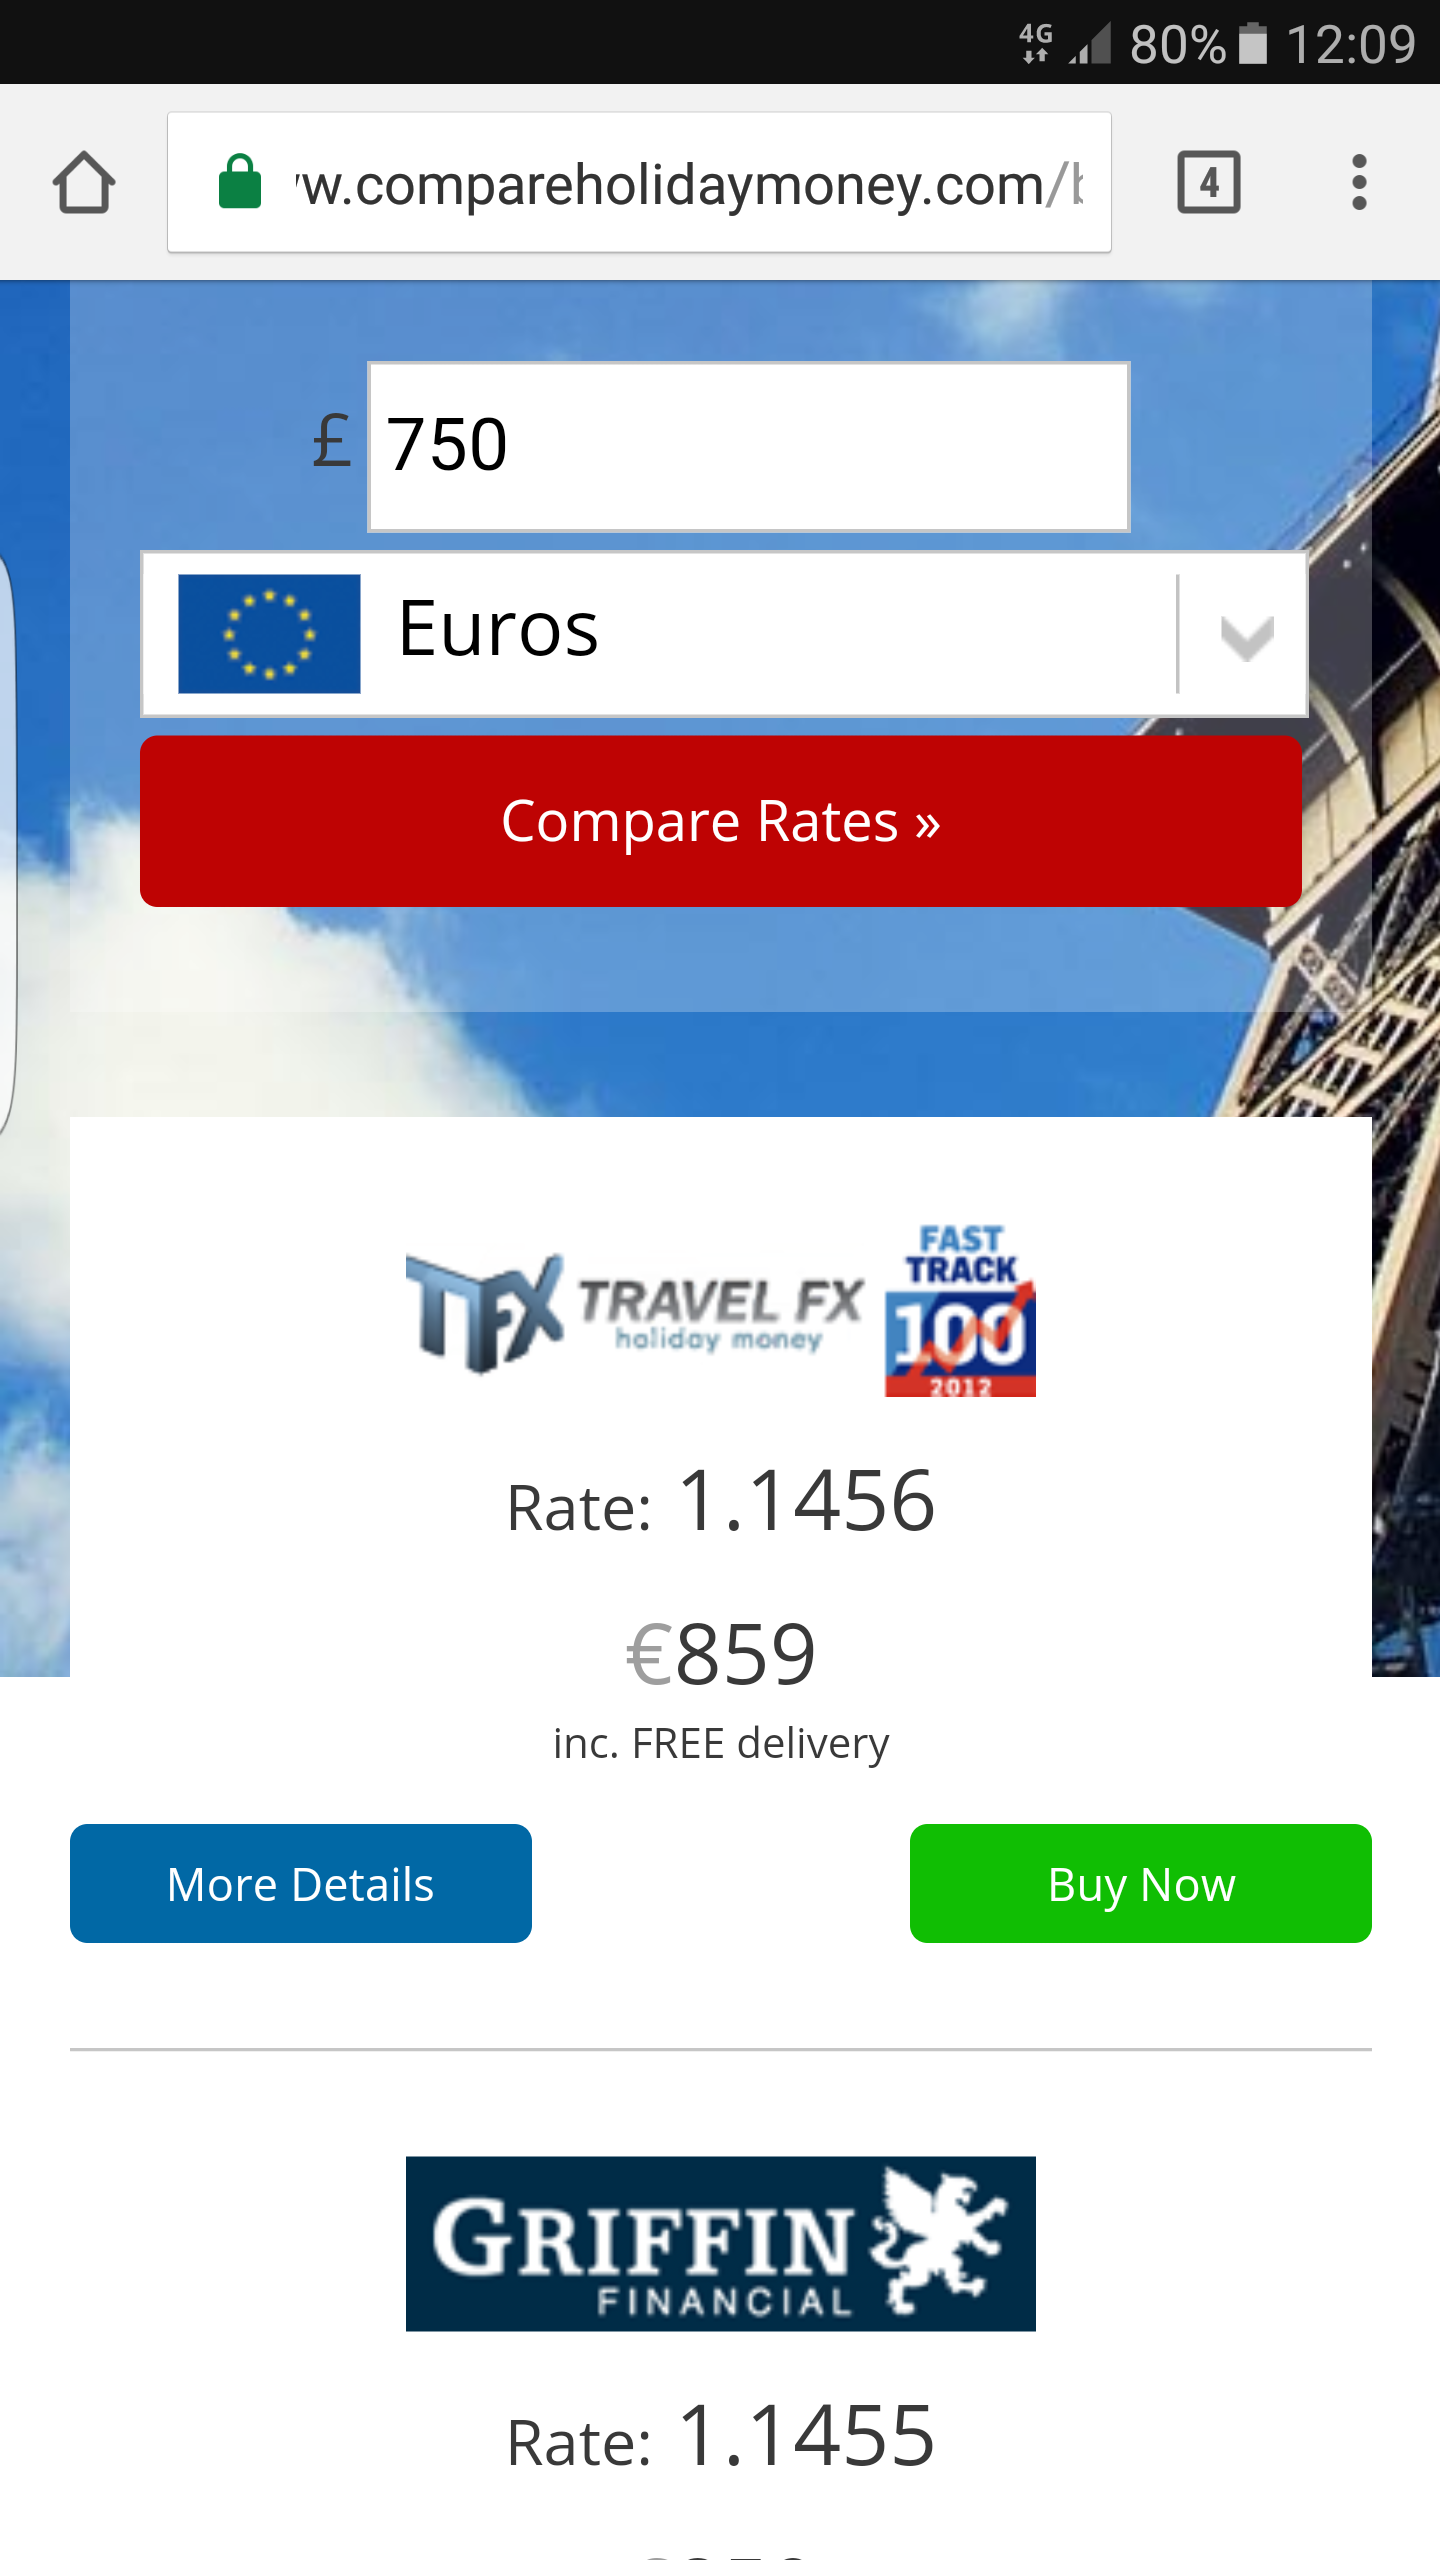 An Image Of The Best Exchange Rates For Euros